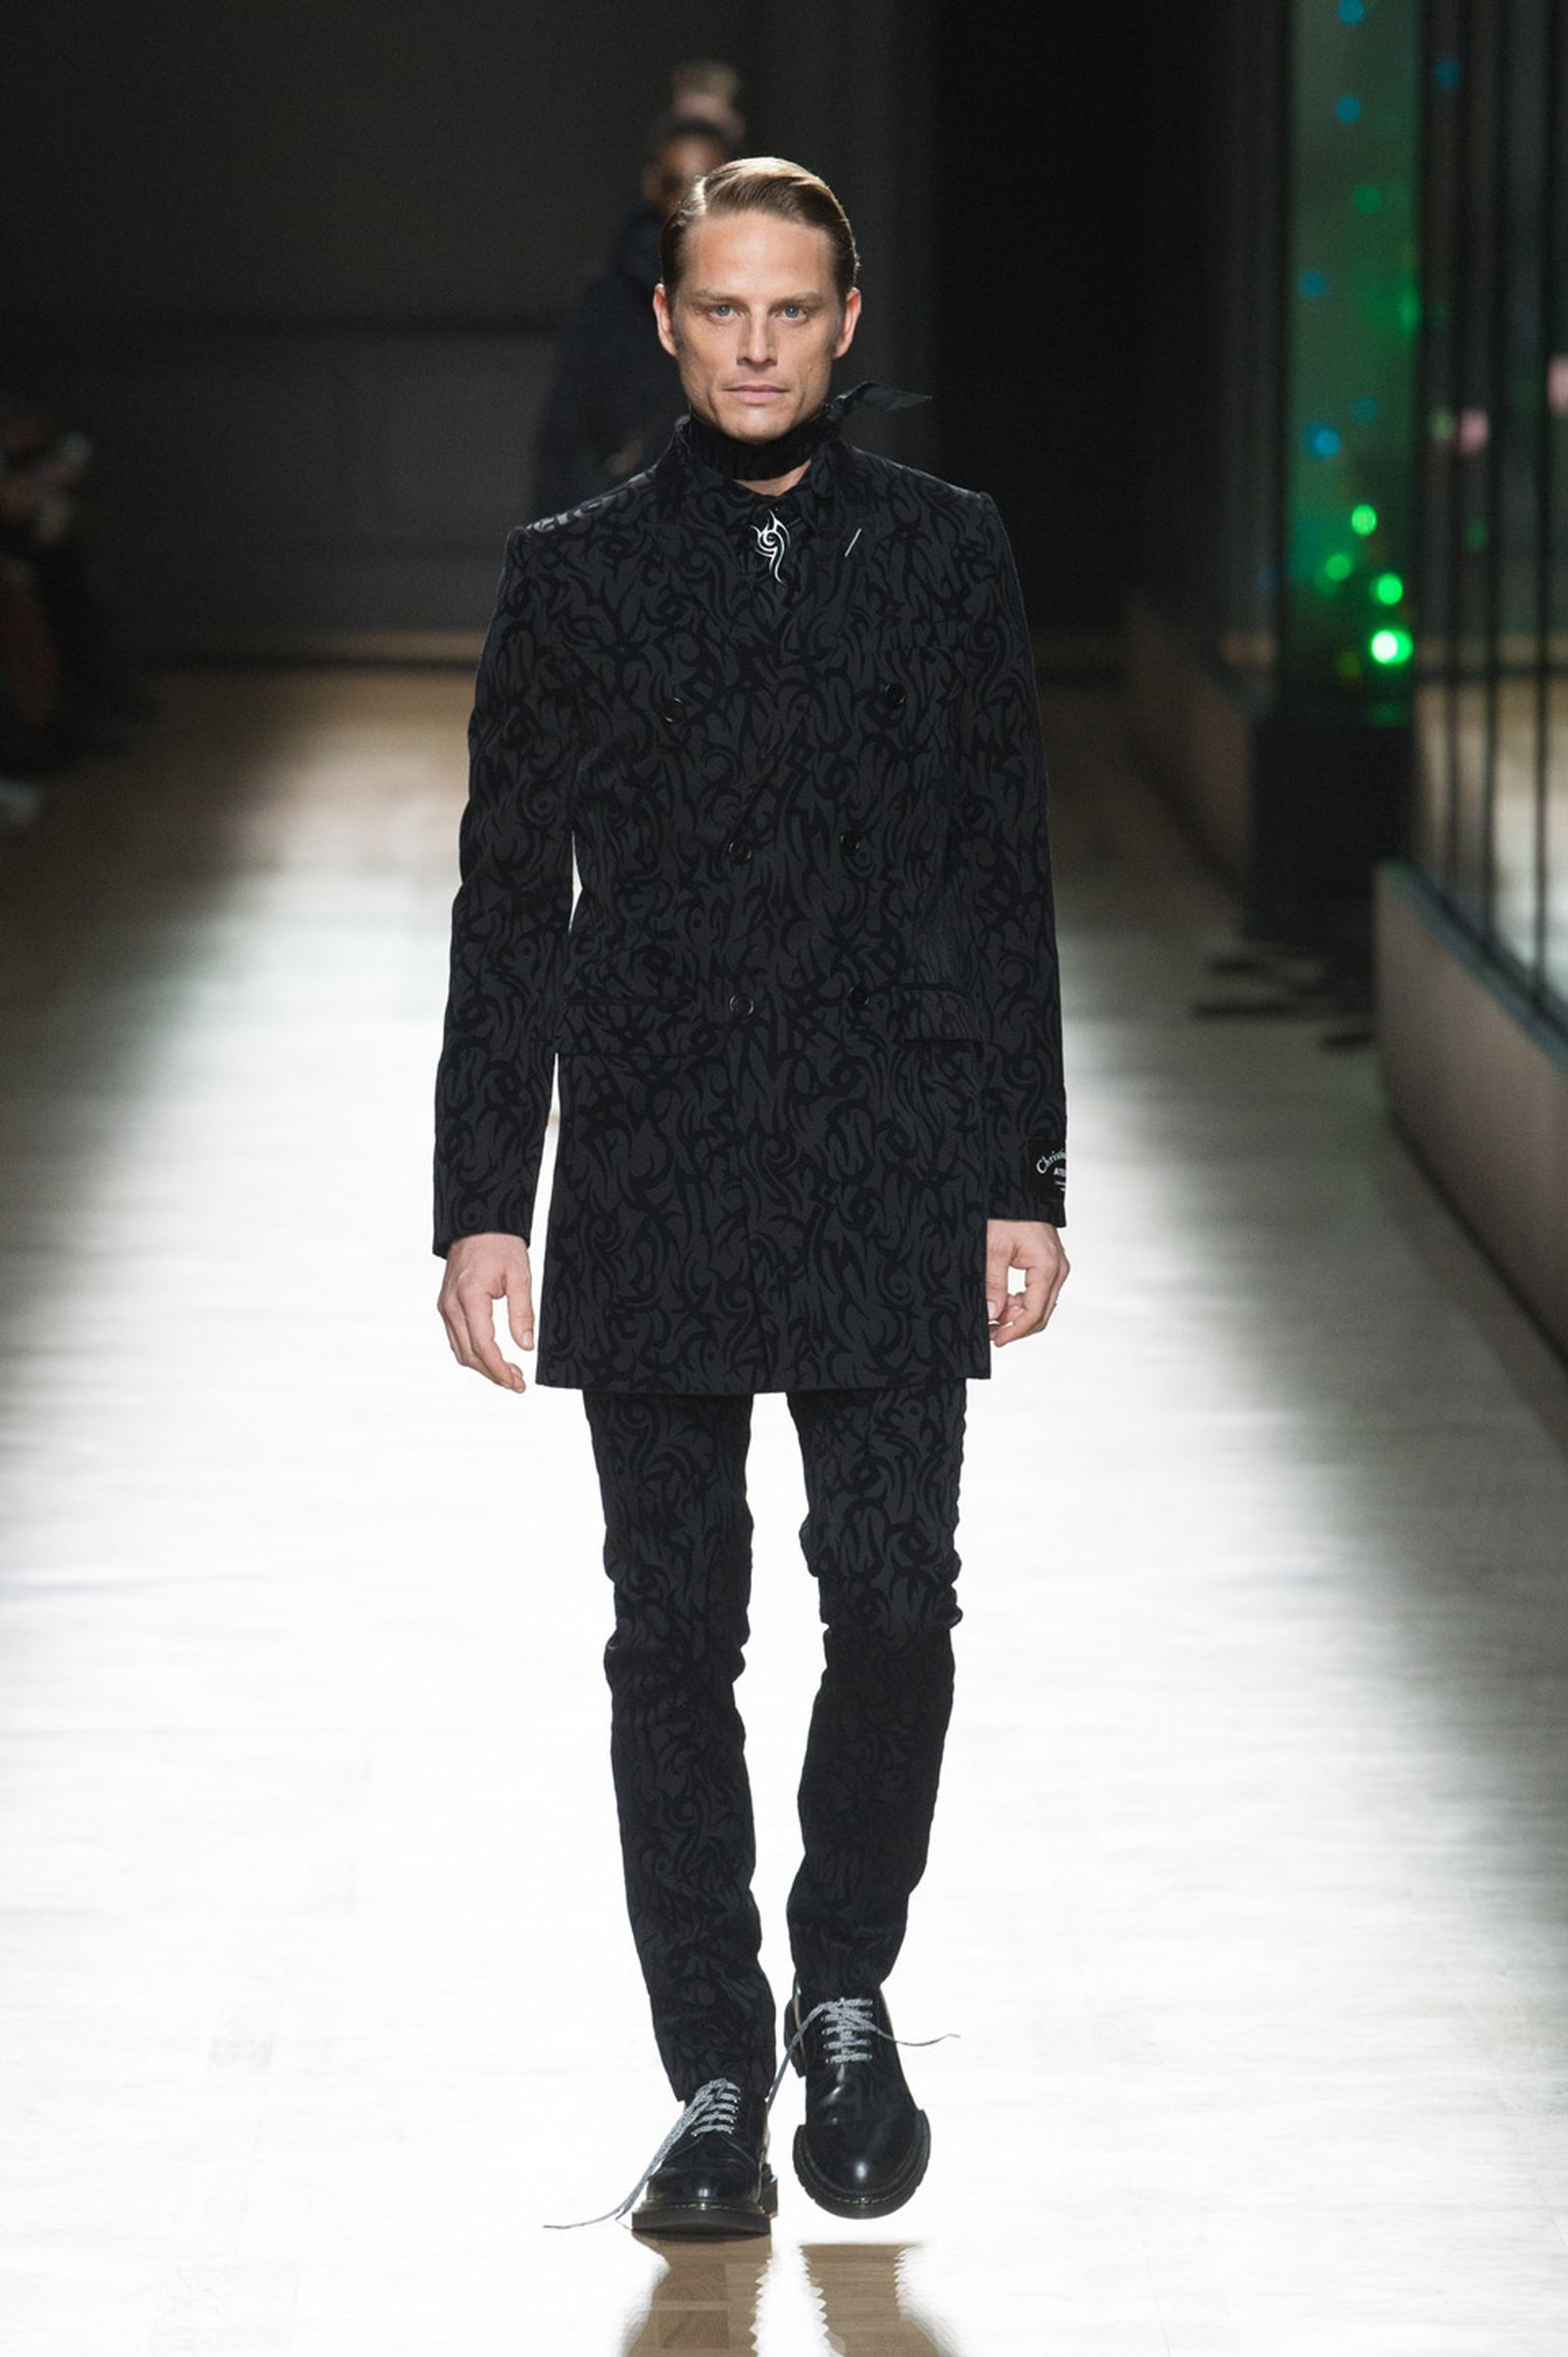 DIOR HOMME WINTER 18 19 BY PATRICE STABLE look43 Fall/WInter 2018 runway